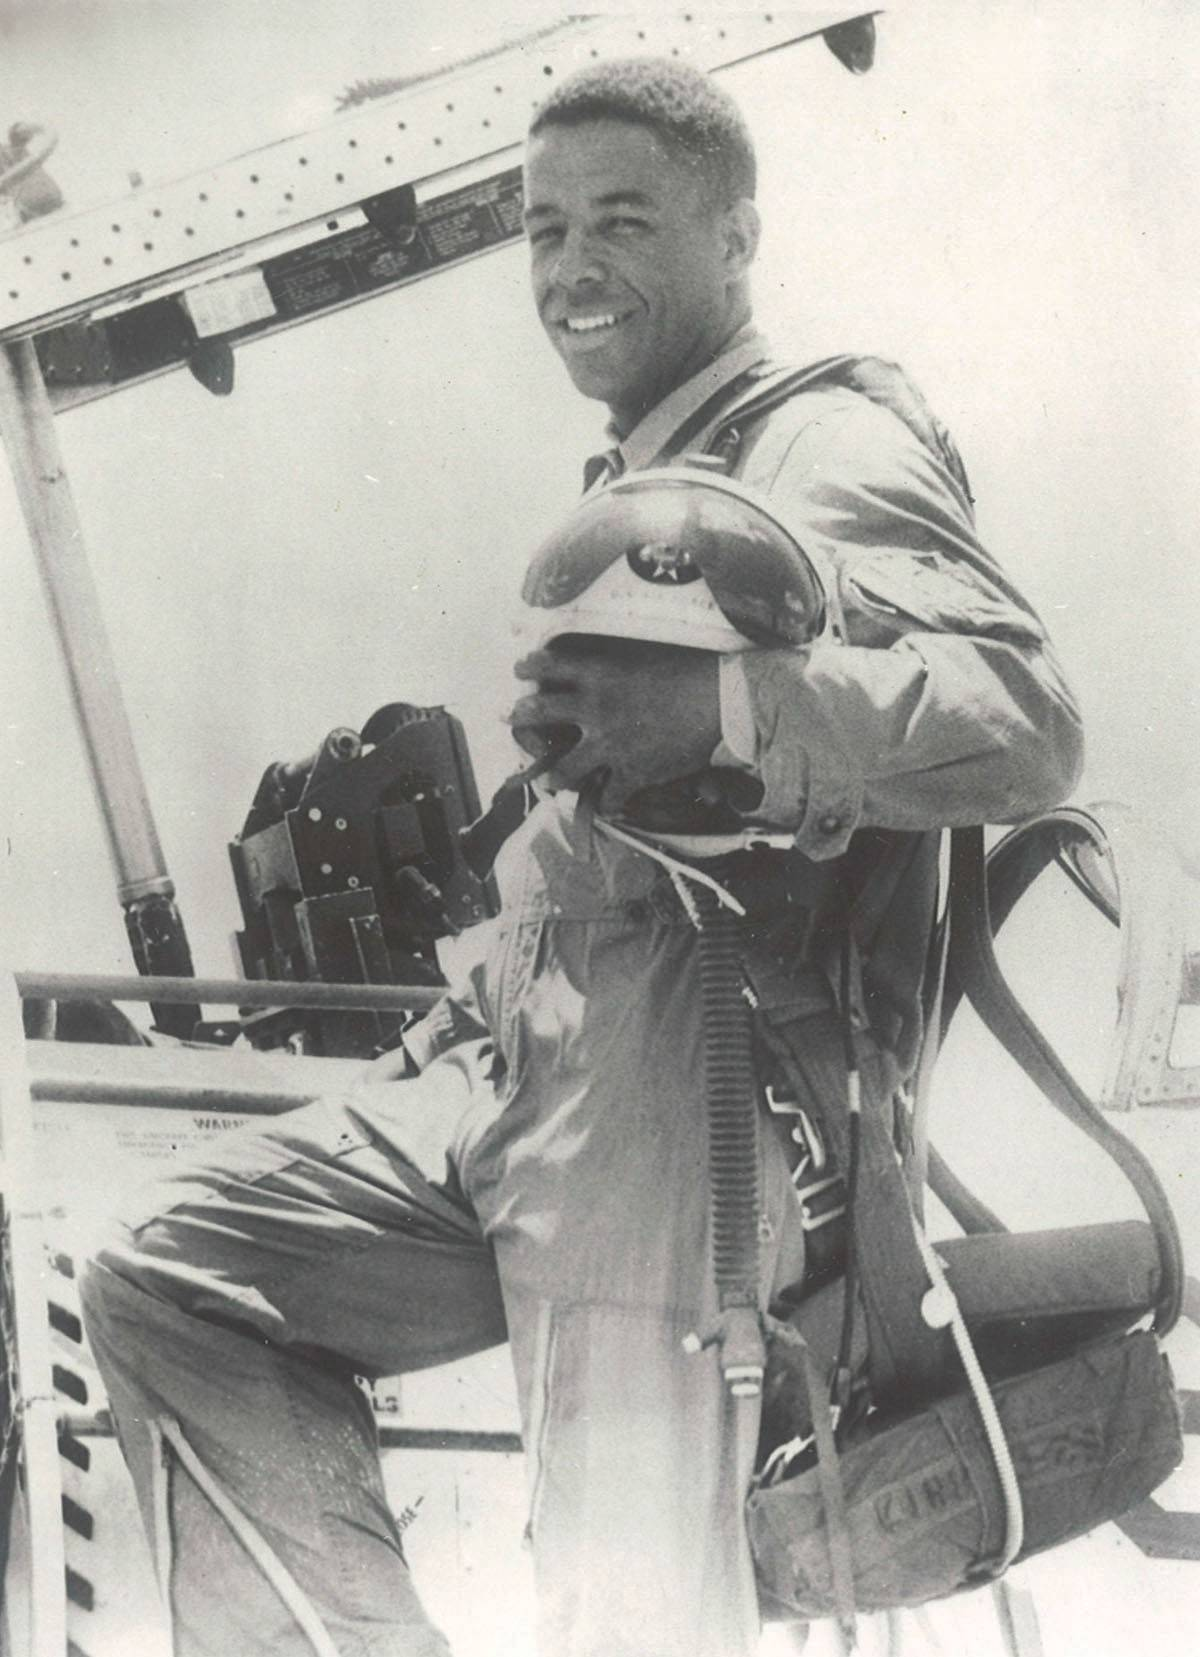 Inspired as a boy by a teacher who served with the famous Tuskegee Airmen of World War II, William R. Norwood took advantage of the Civil Rights Act of 1964 to become the first African-American pilot and captain with United Airlines.